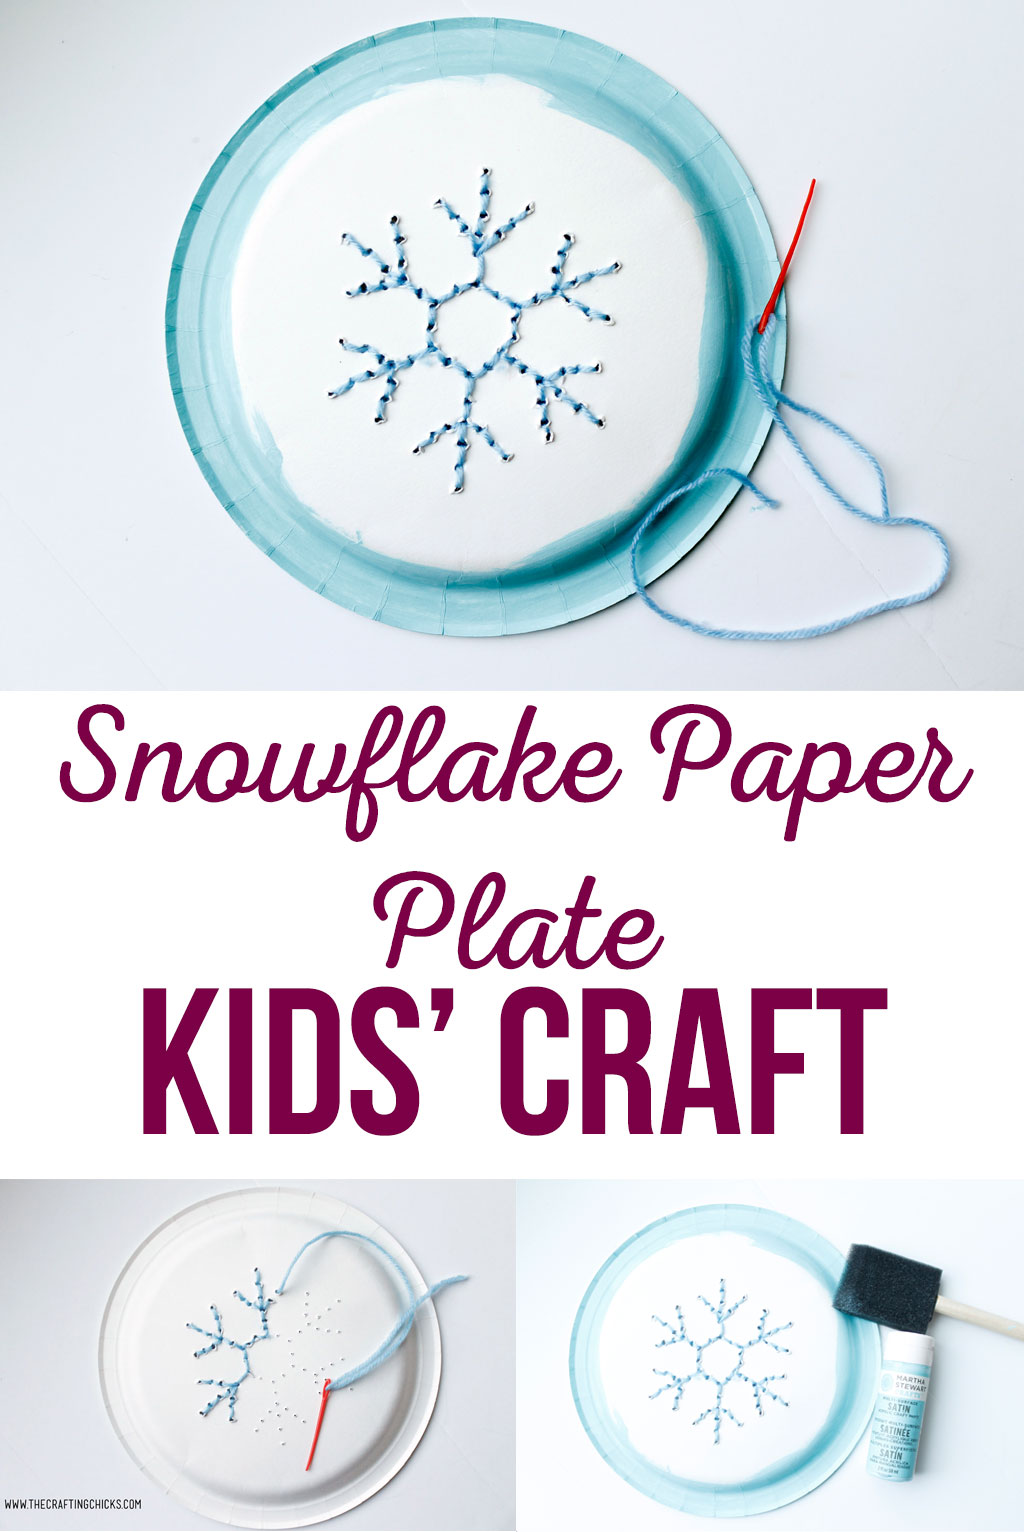 Snowflake Paper Plate Kids Craft is a great craft idea for winter break. Snowflake Paper Plate Kids' Craft is a fun project for kids to work on. They will love using fine motor skills to create a snowflake with yarn.